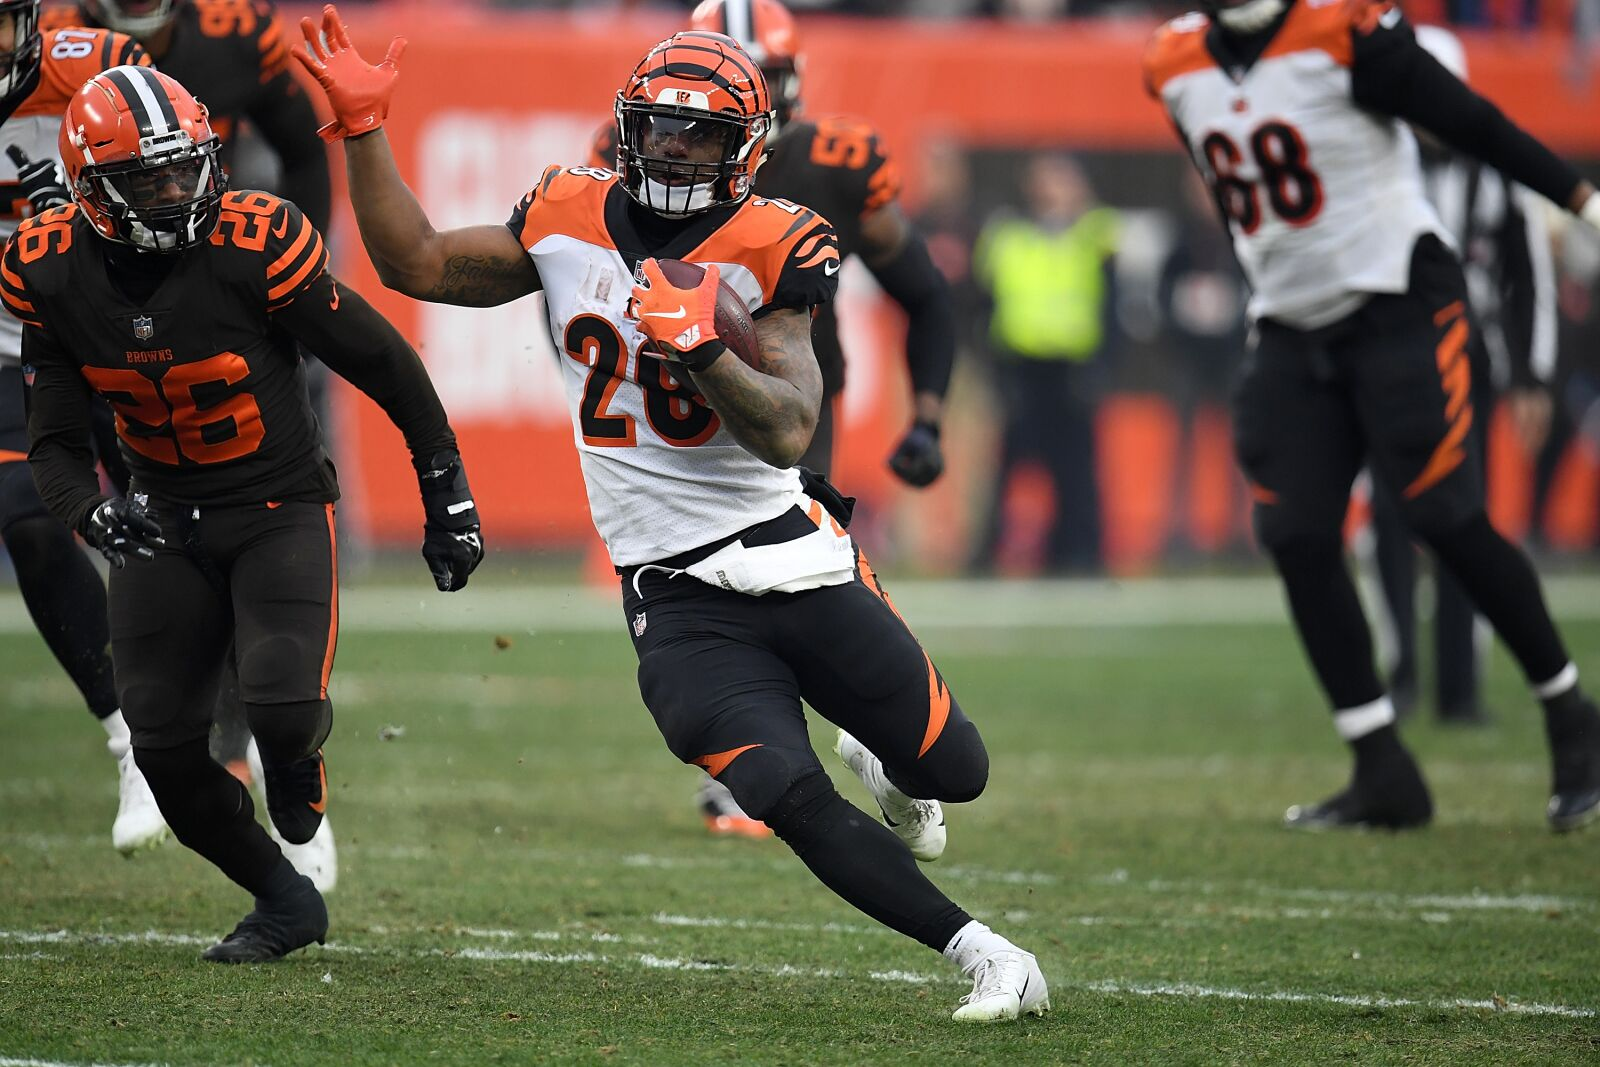 Cincinnati Bengals: Joe Mixon will be the face of the offense in 2019